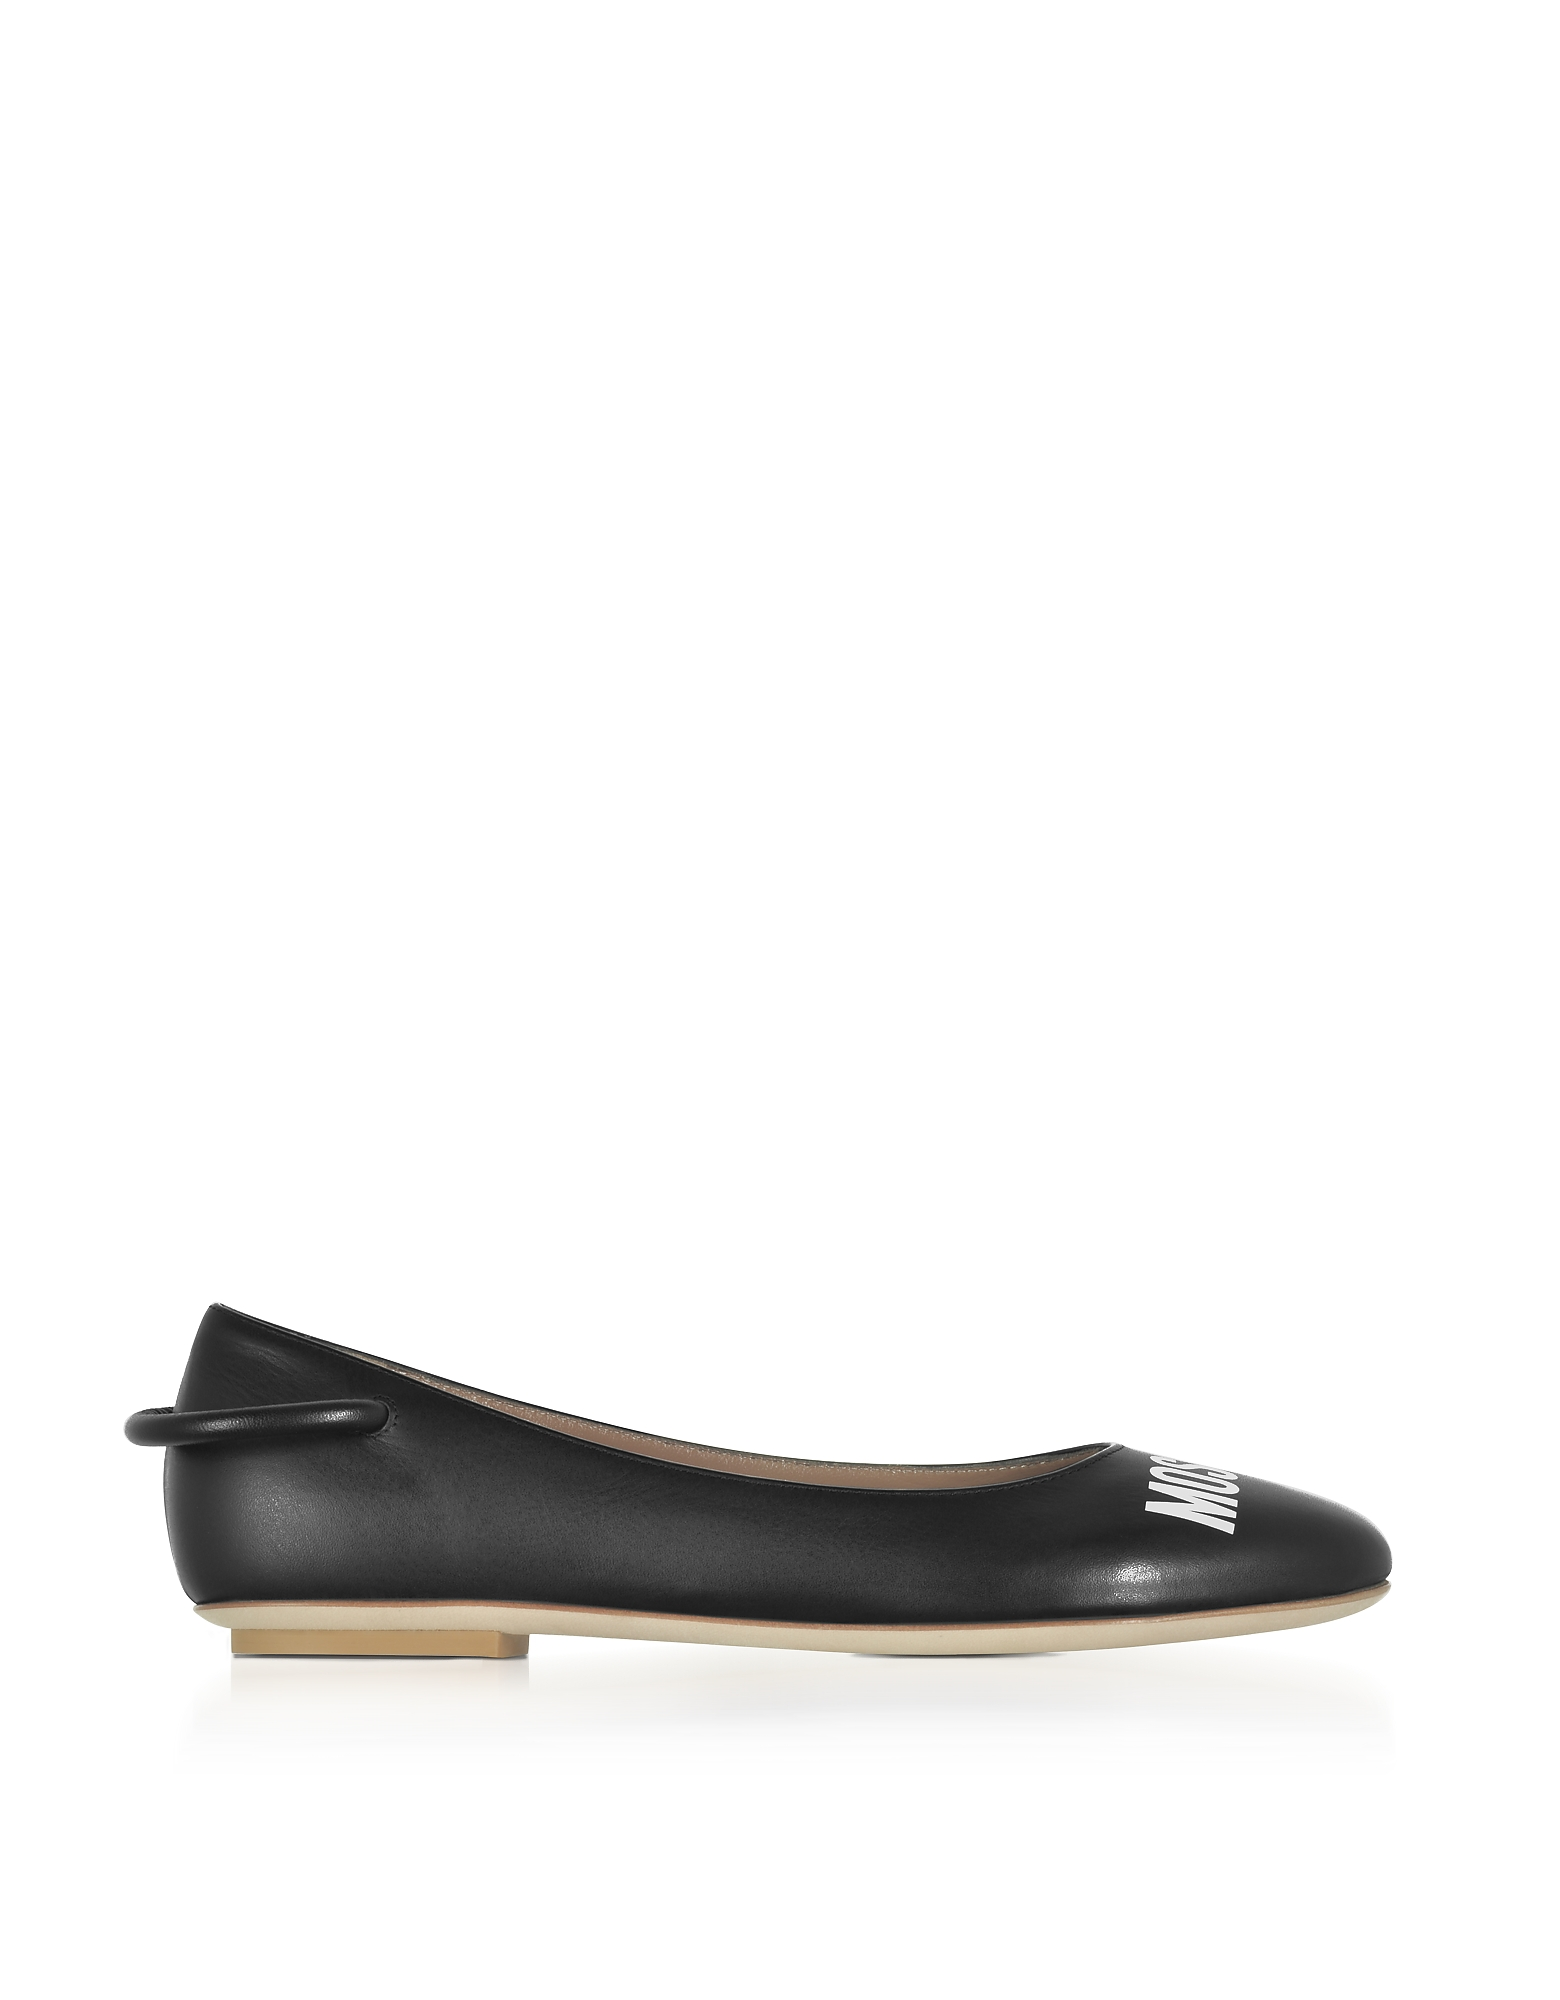 Moschino Shoes, Black Nappa Leather Signature Ballerina